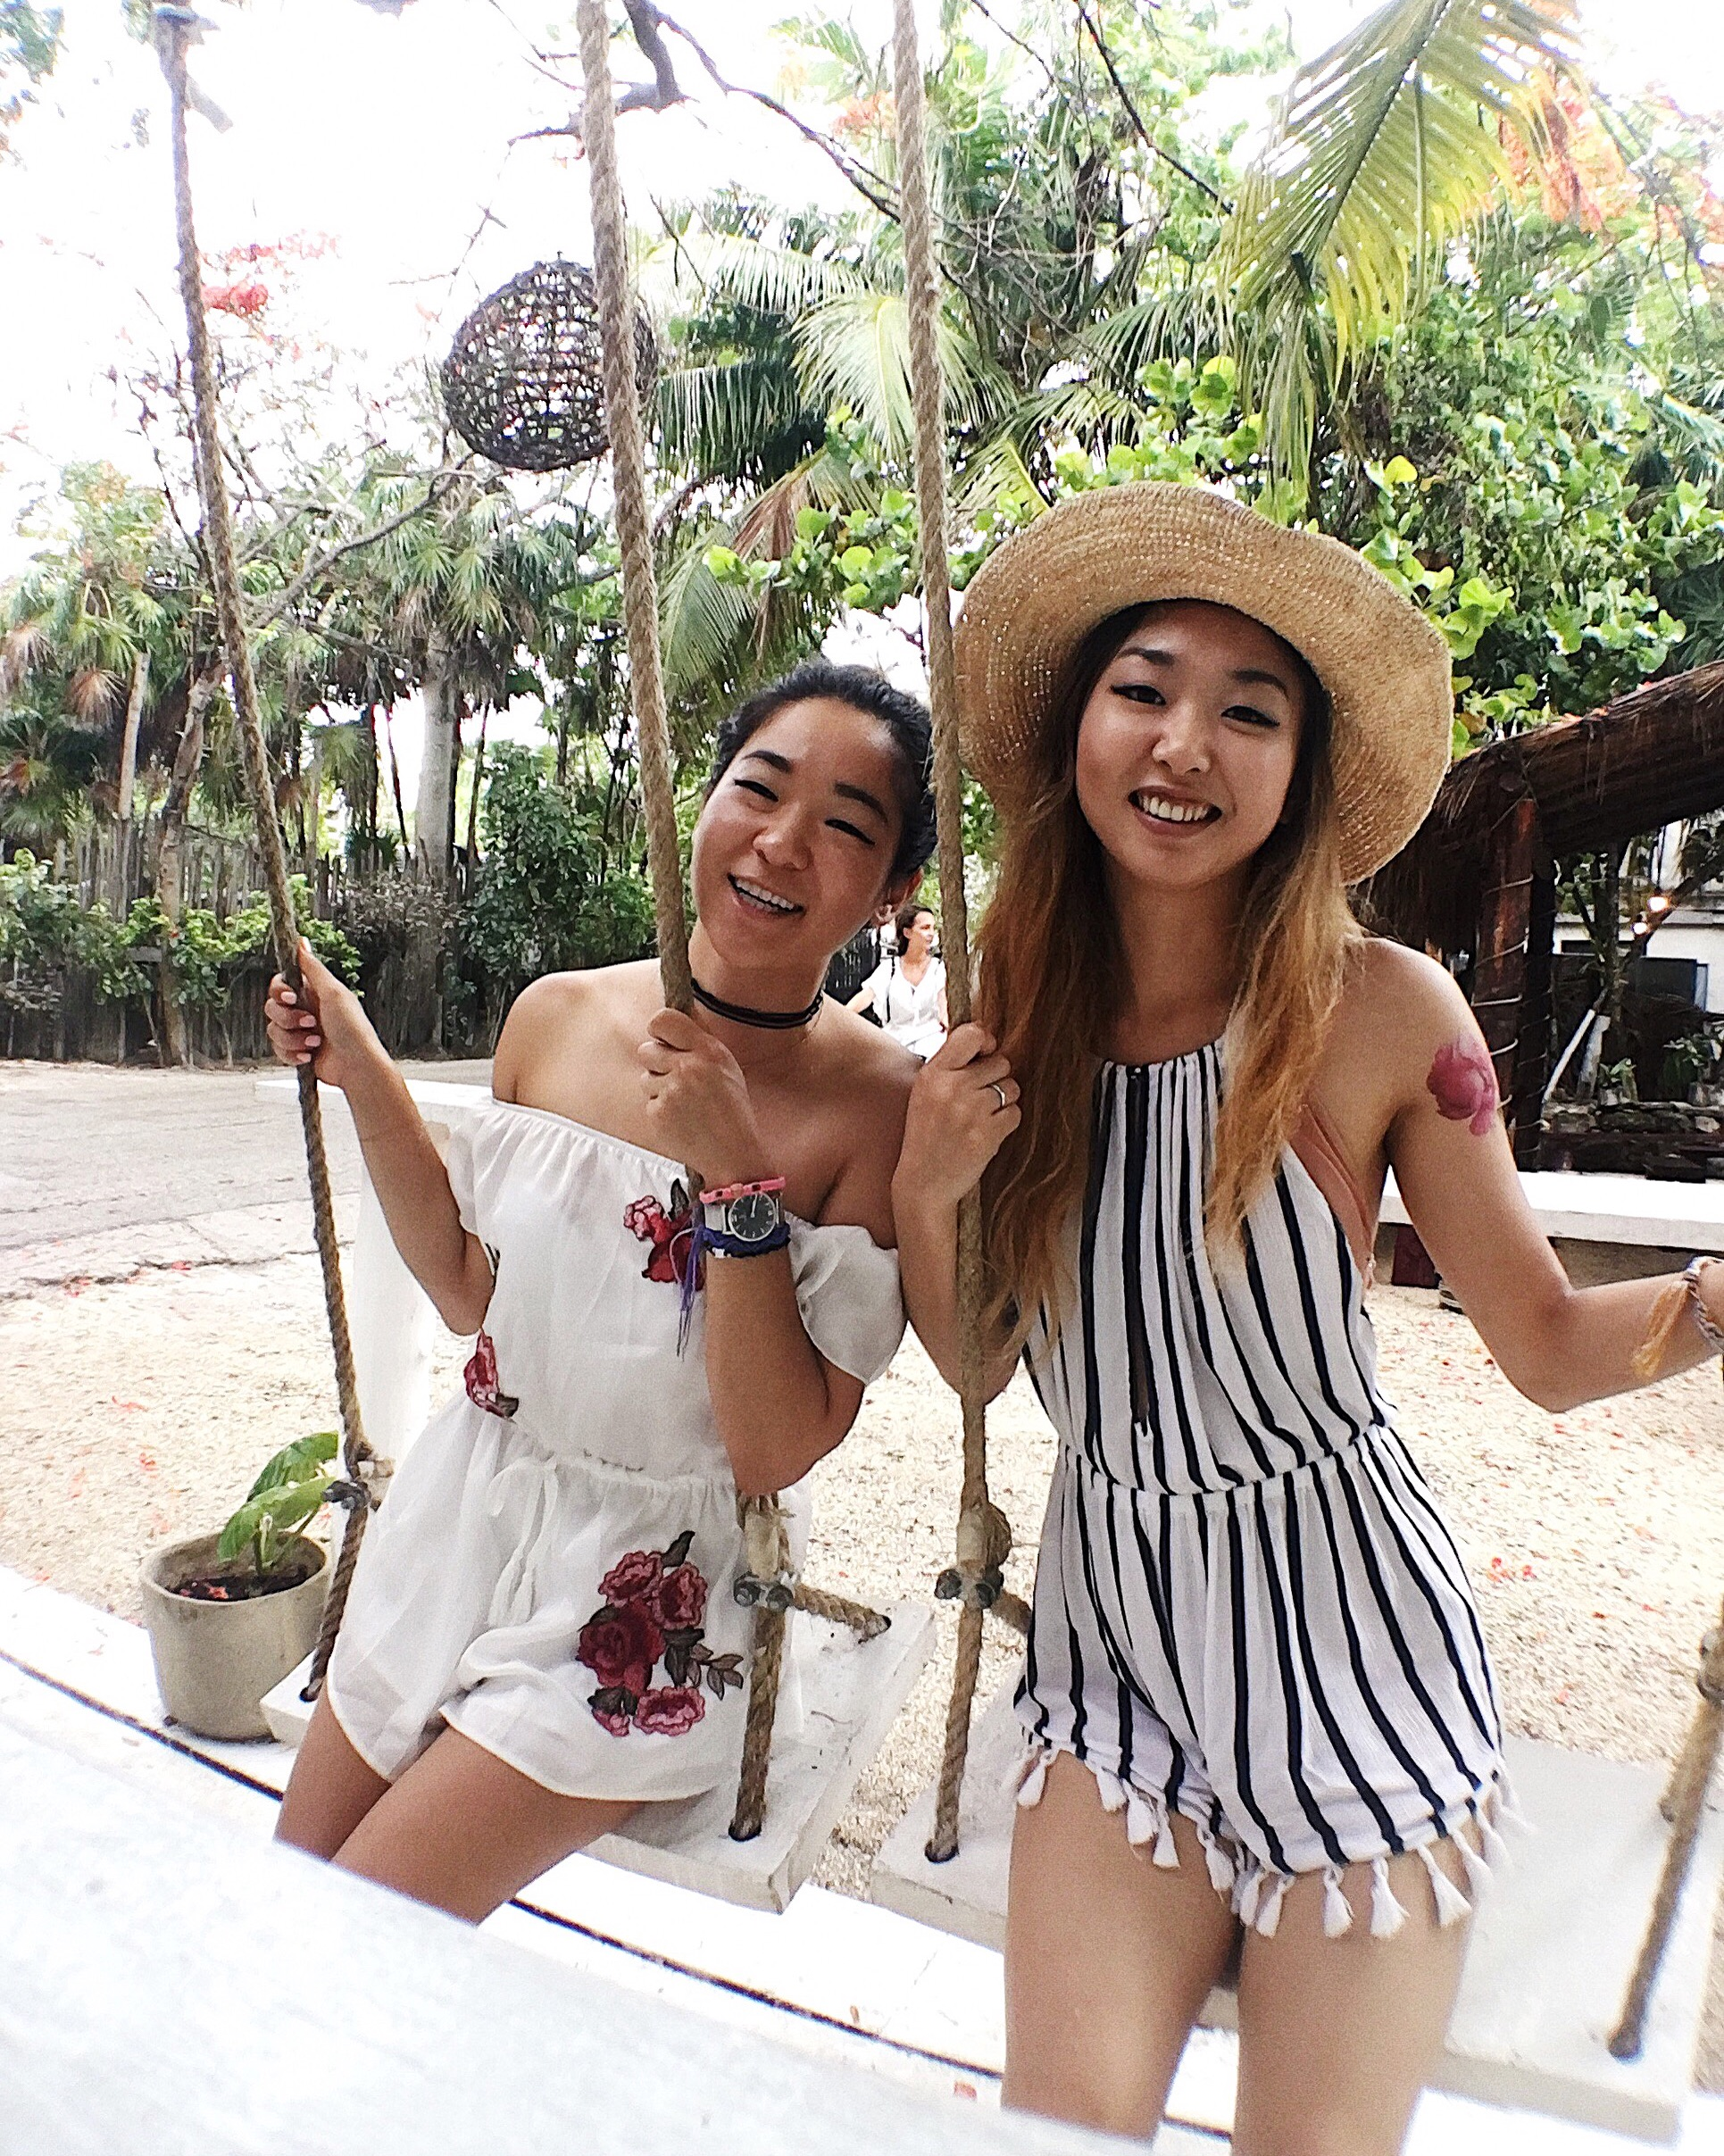 White satin romper (  Forever21  ), white striped romper (Abercrombie and Fitch, no longer available, similar   here  ,  here   and   here  )